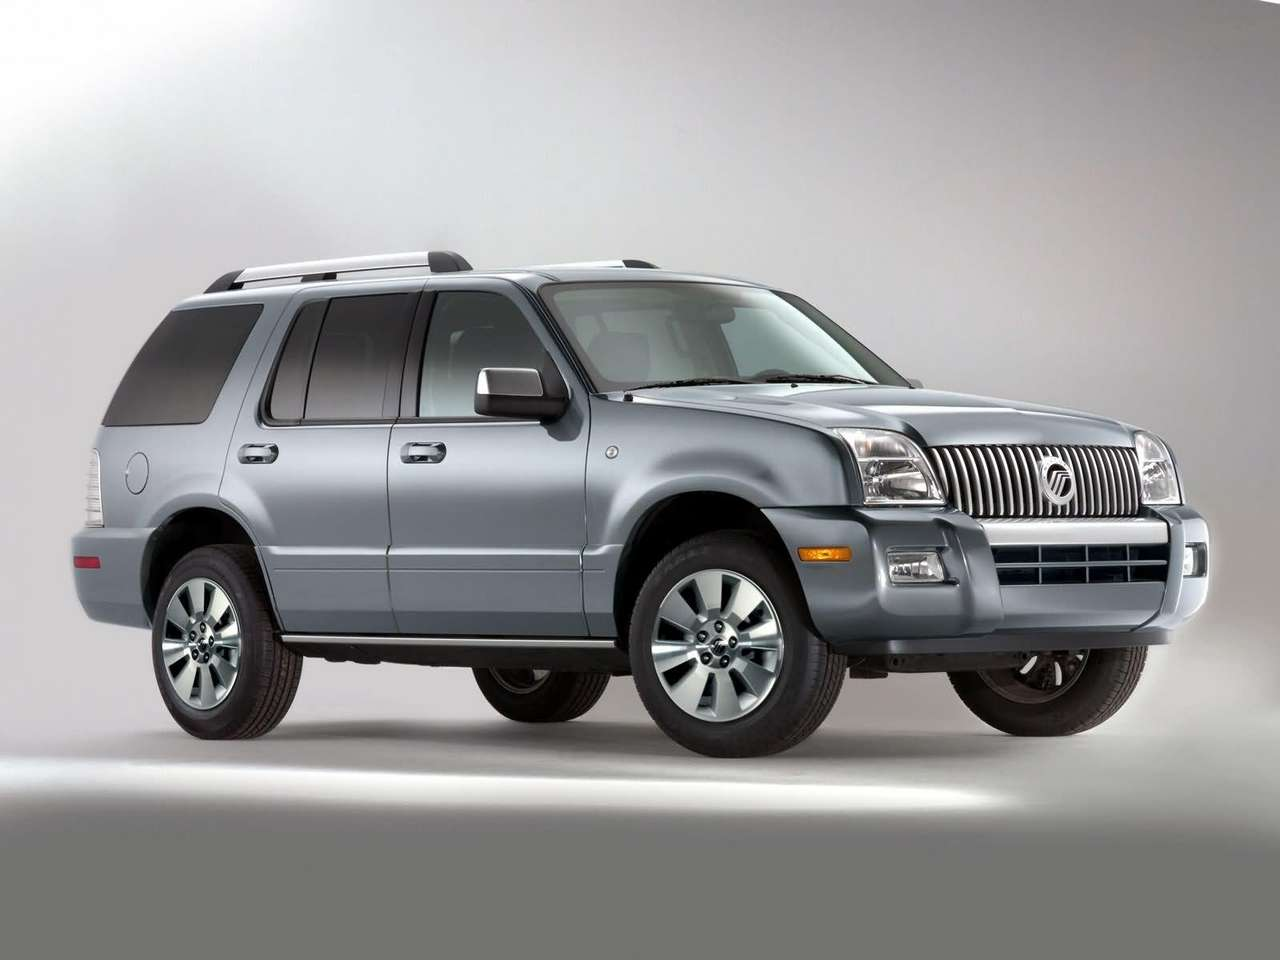 2009 Mercury Mountaineer #6